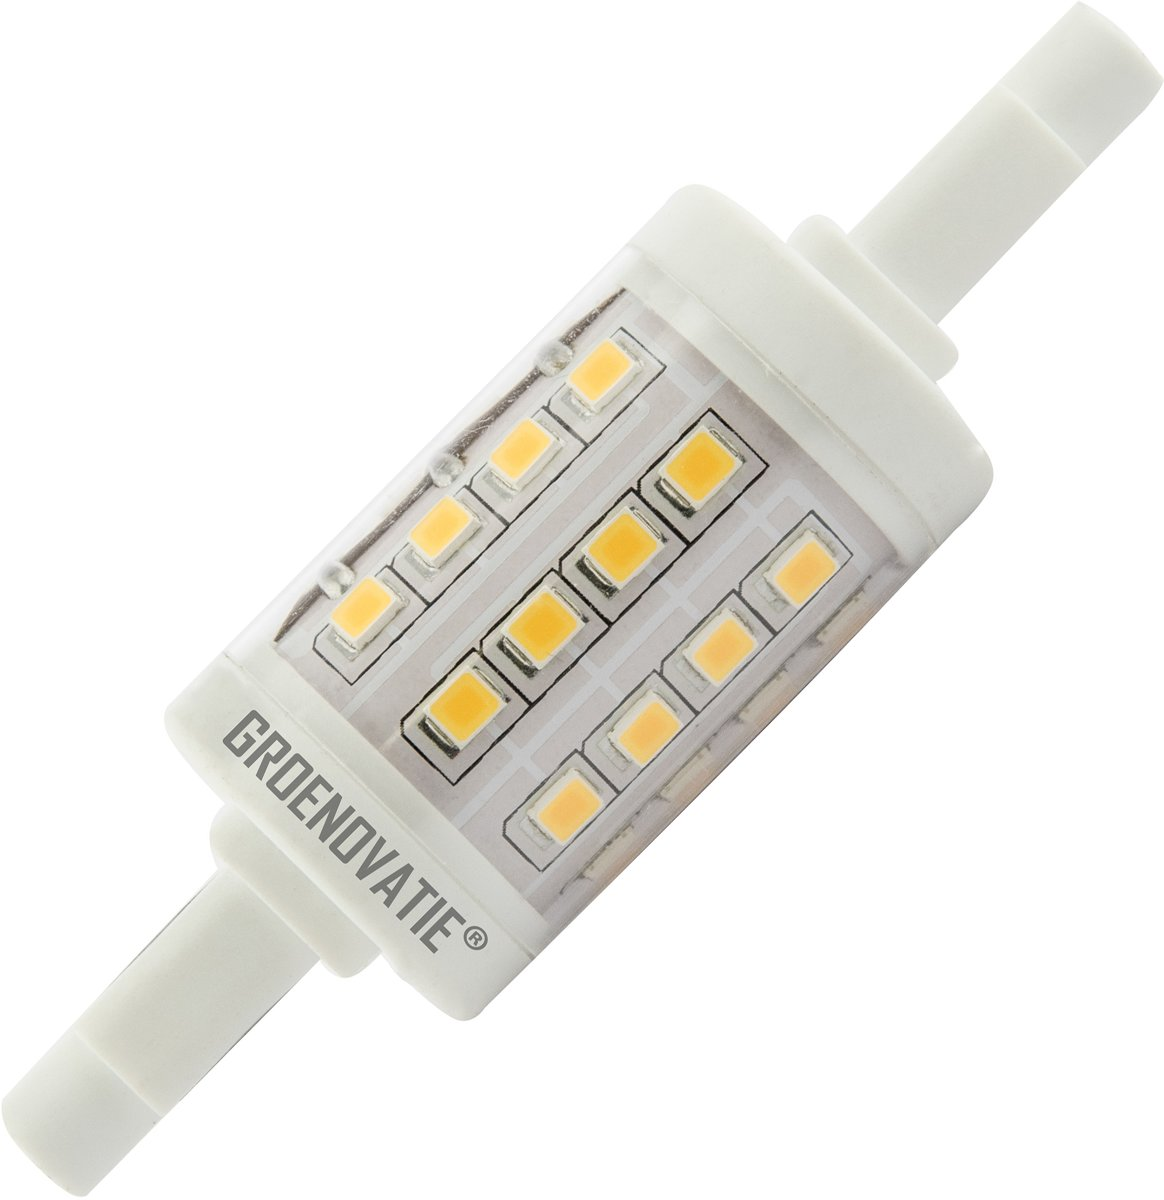 R7s Led Dimbaar Philips Groenovatie Led Lamp R7s Fitting 5w 22x78 Mm 360º Dimbaar Warm Wit